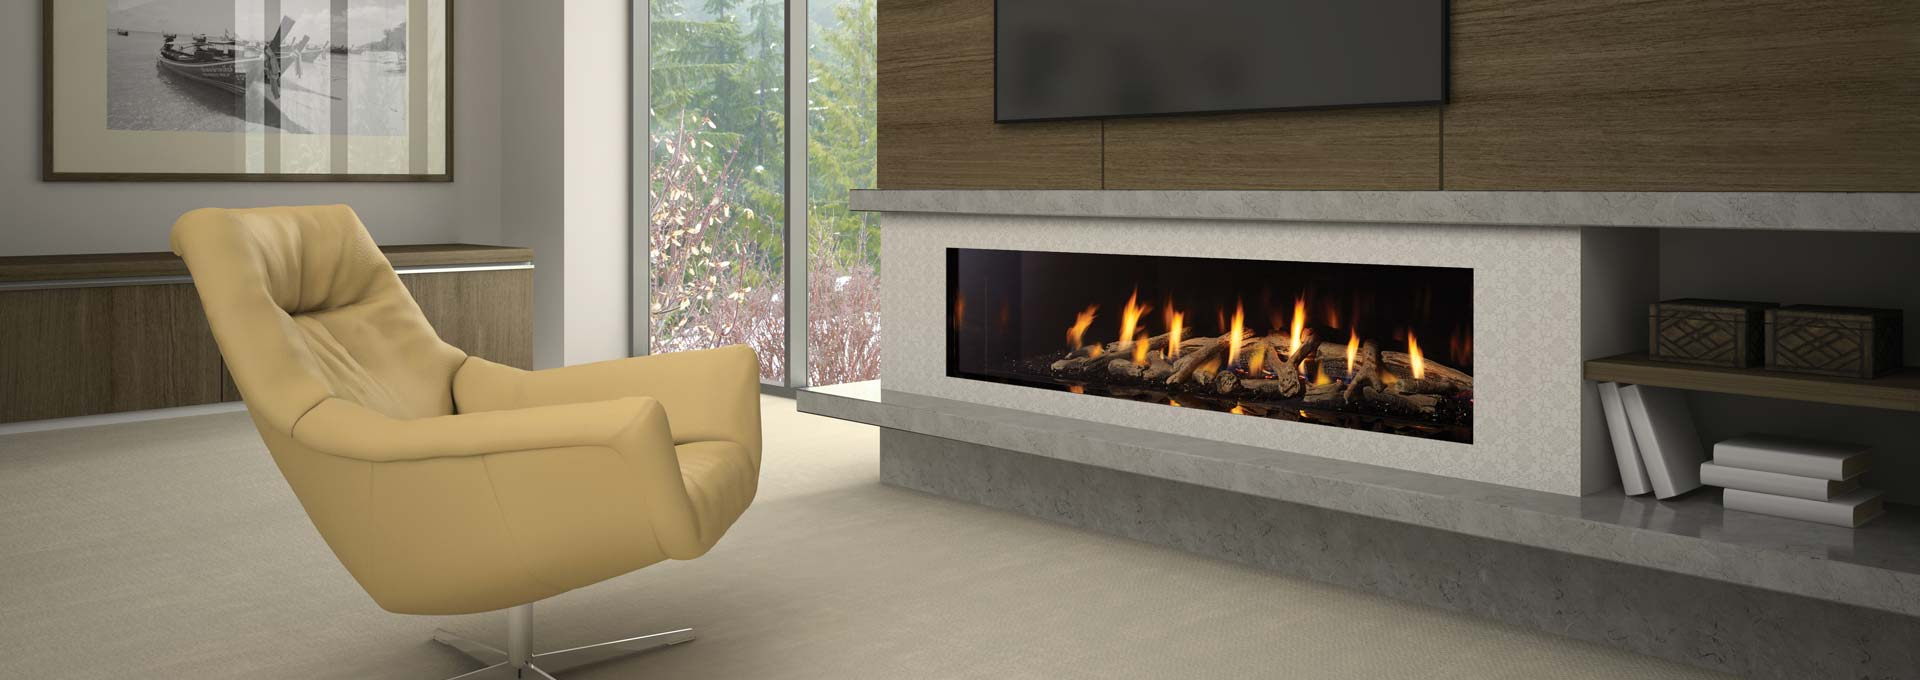 on master fireplaces cozy fireplace floor bedrooms the with radiant inspiring designer